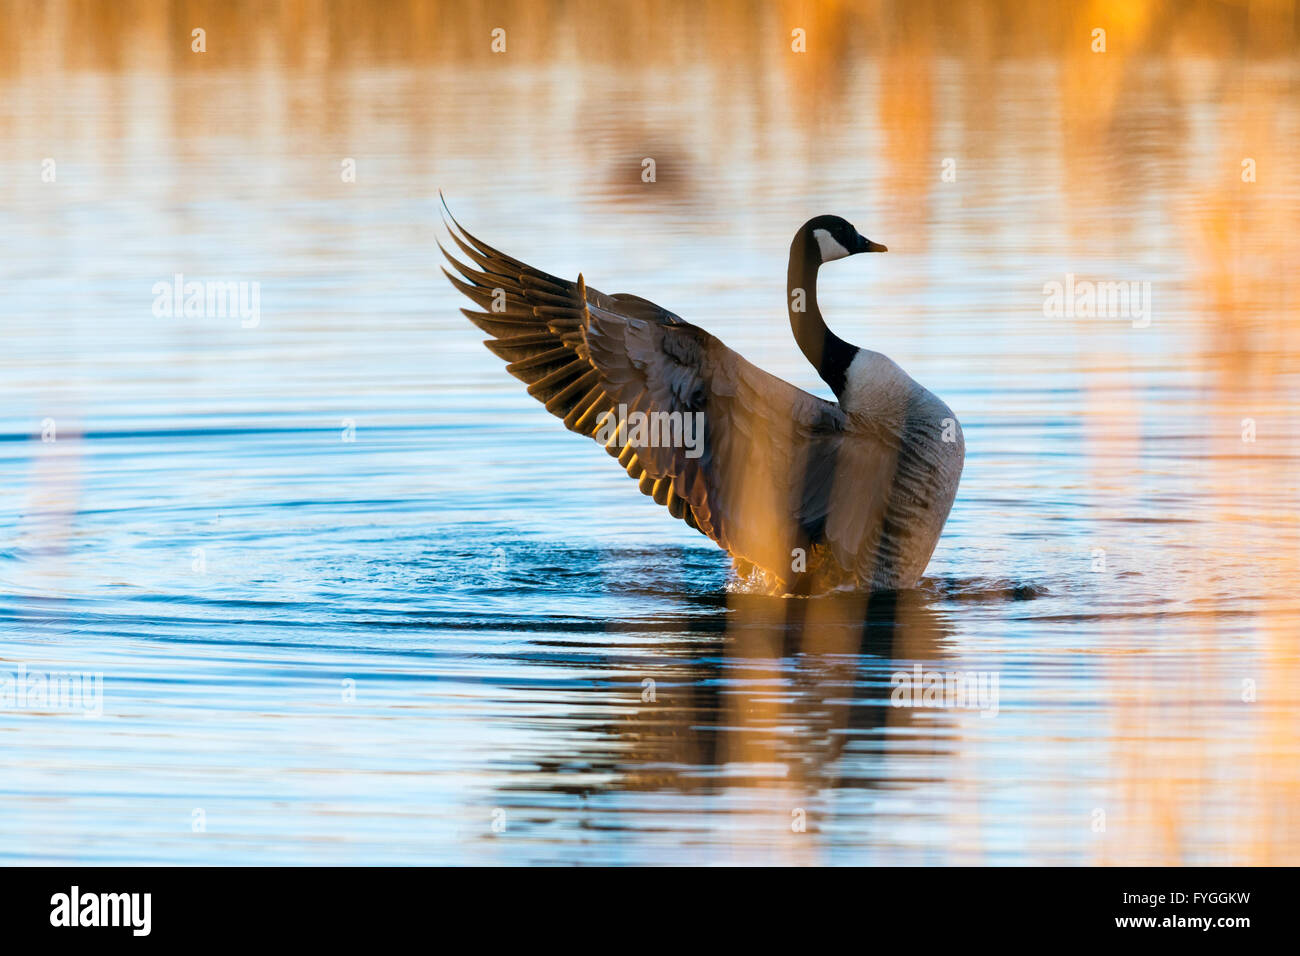 View of a Canada goose, through sunlit reeds - Stock Image